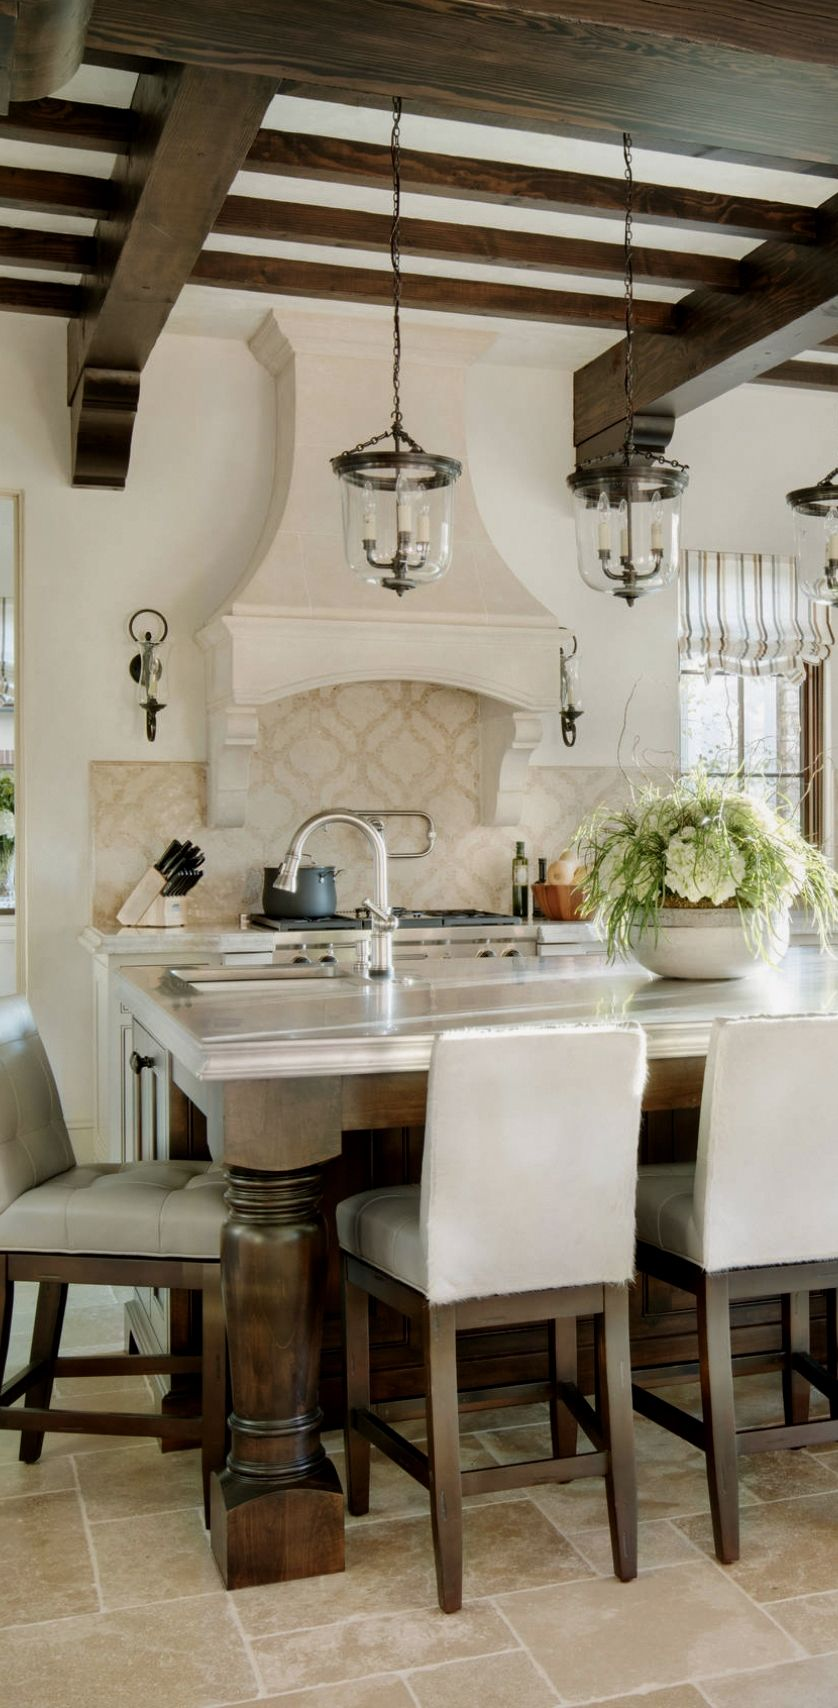 30 Adorable Kitchen Style Suggestions in 2020 Home